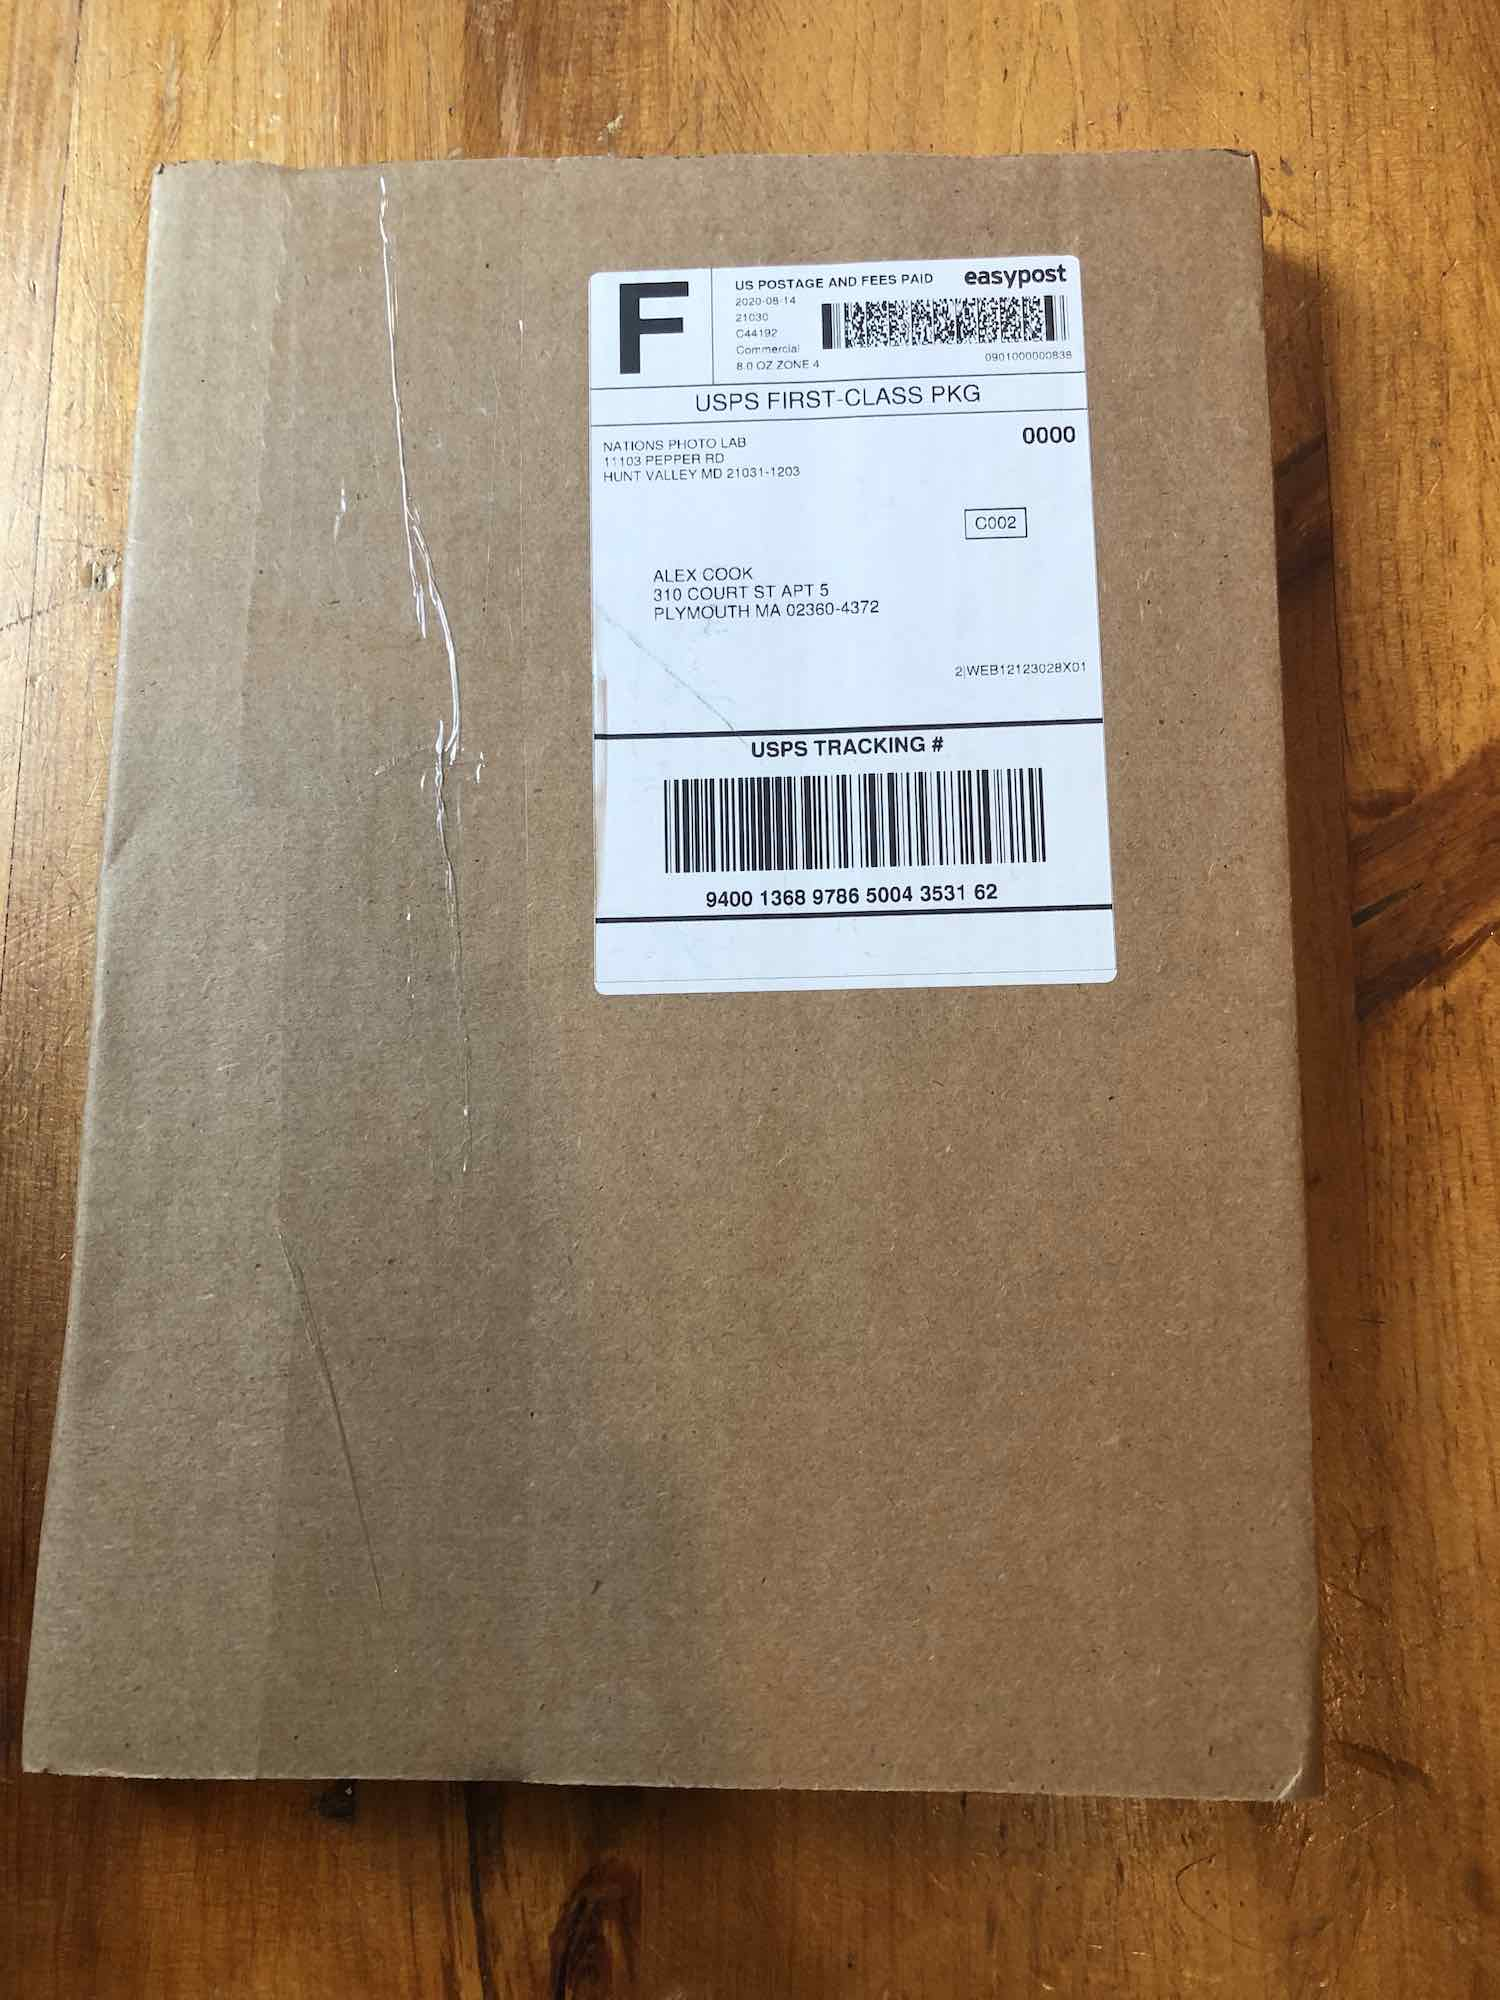 "There is a brown cardboard box wallet envelope vertically positioned on a table. There is a transparent adhesive tape wrapped around the left side of the box. The top right side of the box has a shipping label stuck to it. The shipping label is divided into 5 horizontal parts. The first part of the shipping label is divided into two parts by a vertical line. The left contains a block letter ""F"" printed in a very thick font. The right part has the postage information. It reads ""US POSTAGE AND FEES PAID,"" under this is some text in smaller fonts, it reads, ""2020-08-14 21030 C44192 Commercial 8.0 OZ ZONE 4."" Across this is a text in slightly larger and thick fonts it says ""EasyPost."" Under this is a barcode, and below the barcode are tiny numbers that say ""0901000000838."" The second part has text in block letters that reads ""USPS FIRST-CLASS PKG."" The third part has more space than the other parts. In it, there is a return address printed in the top left corner. It reads, ""NATIONS PHOTO LAB, 11103 PEPPER ROAD, HUNT VALLEY MD 21031-1203,"" right across are digits that say, ""0000."" Below the return address is the delivery address which is blurred out. To the top right of the delivery address is the text ""C002"" printed in a small box. At the bottom right corner of this part is some reference number that read ""2